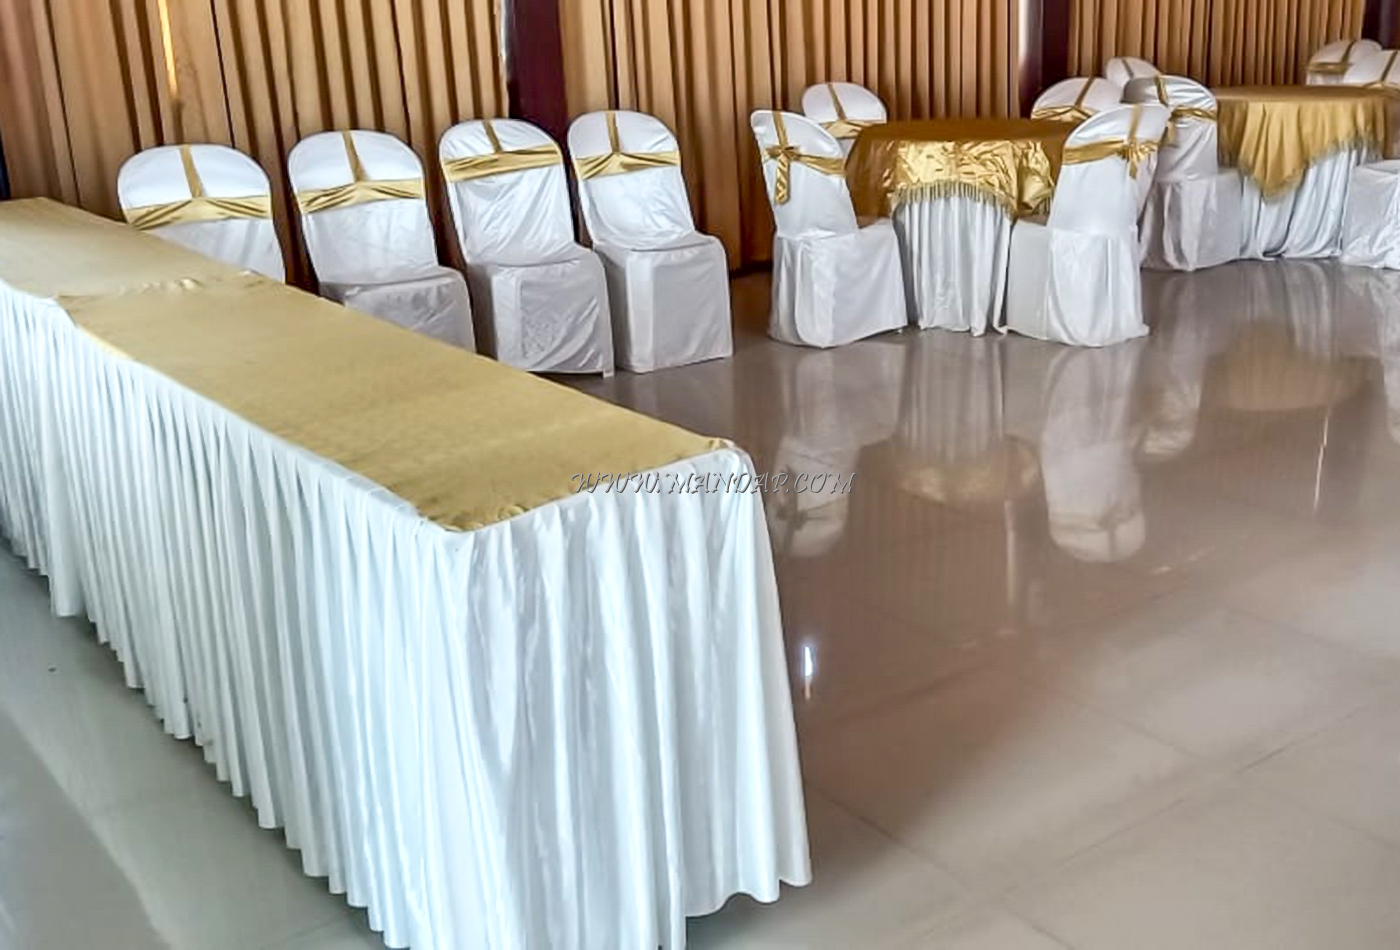 Find the availability of the The Platinum Inn (A/C) in Kazhakuttam, Trivandrum and avail special offers